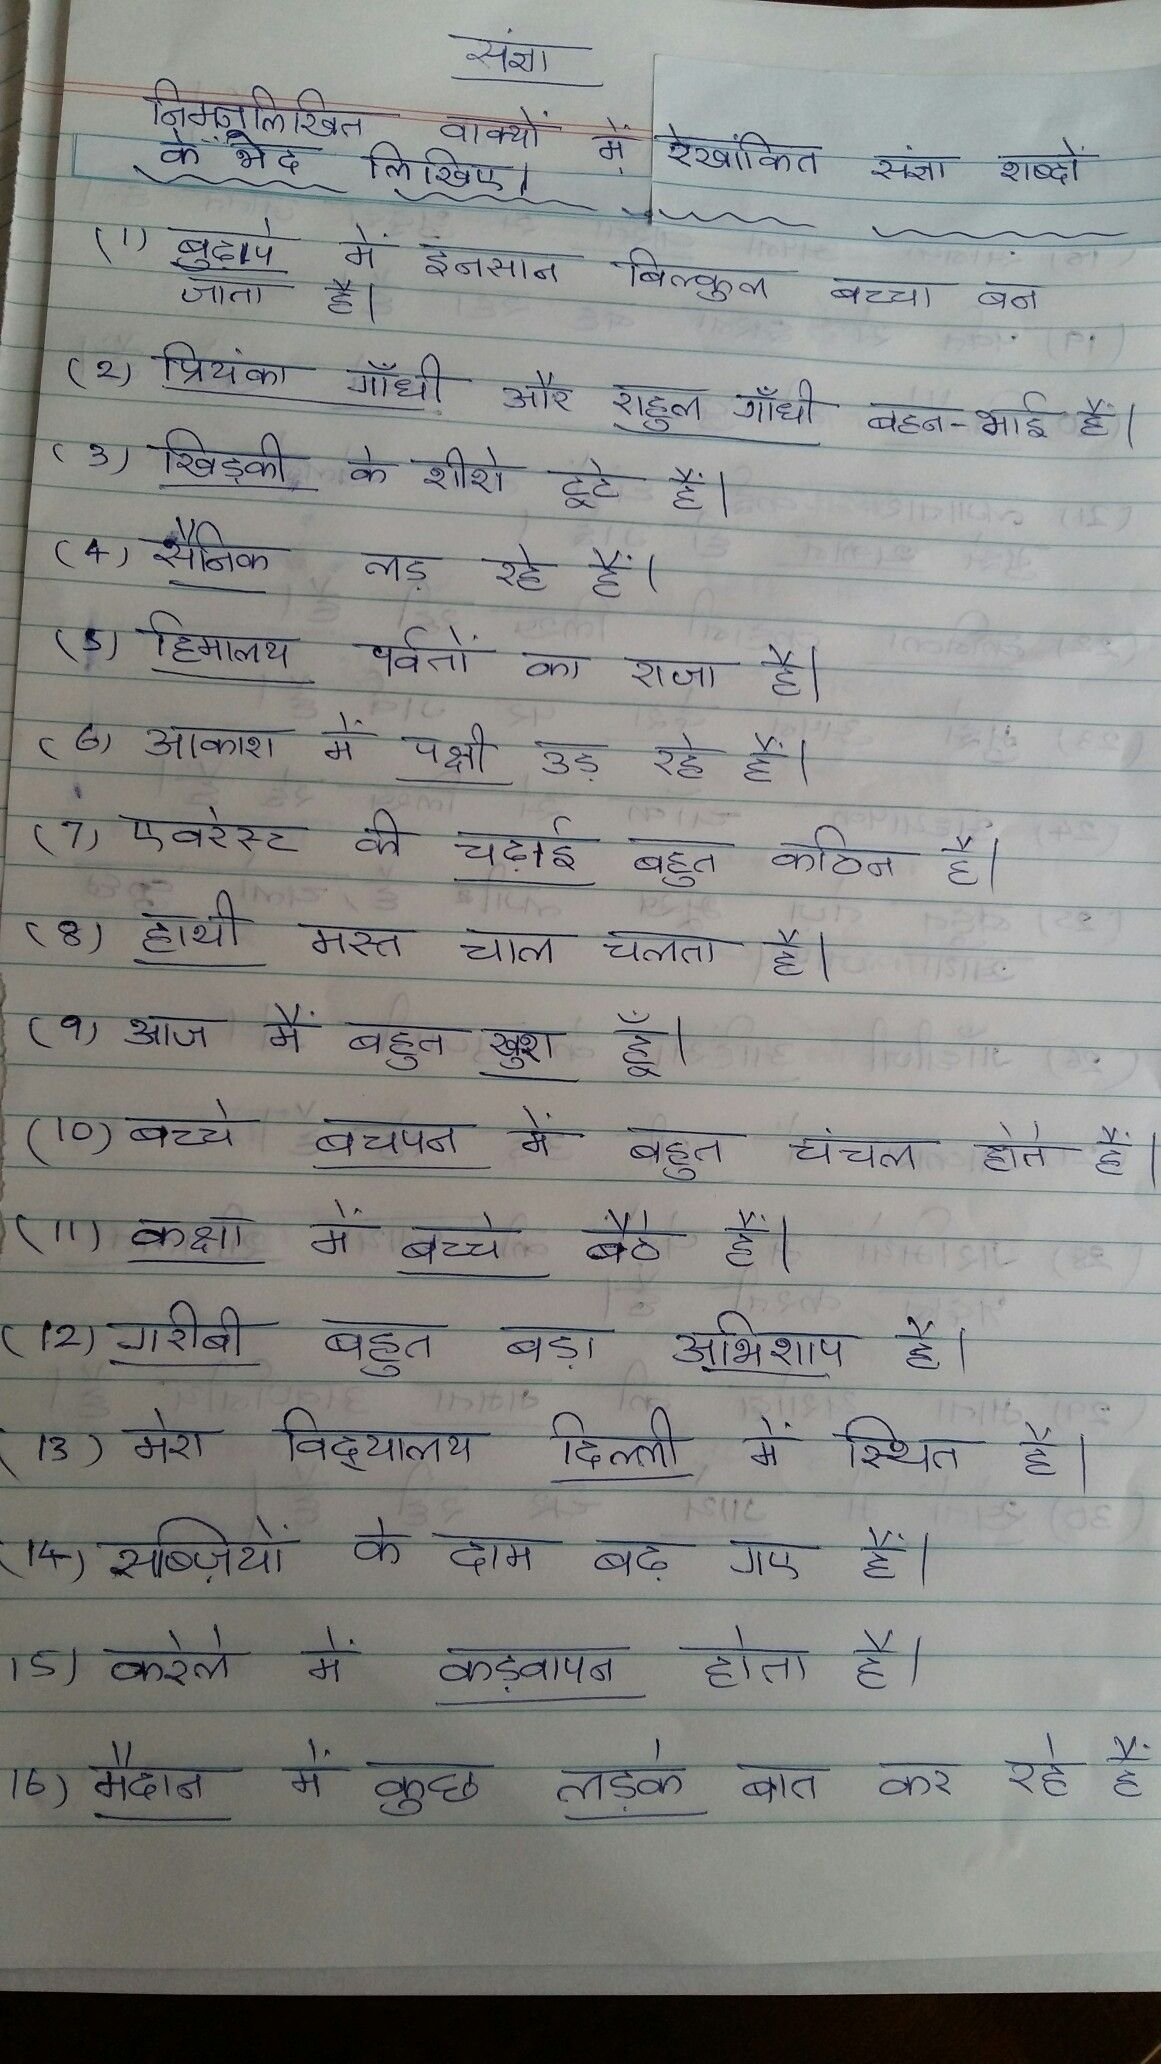 Hindi Grammar Worksheets Sangya V